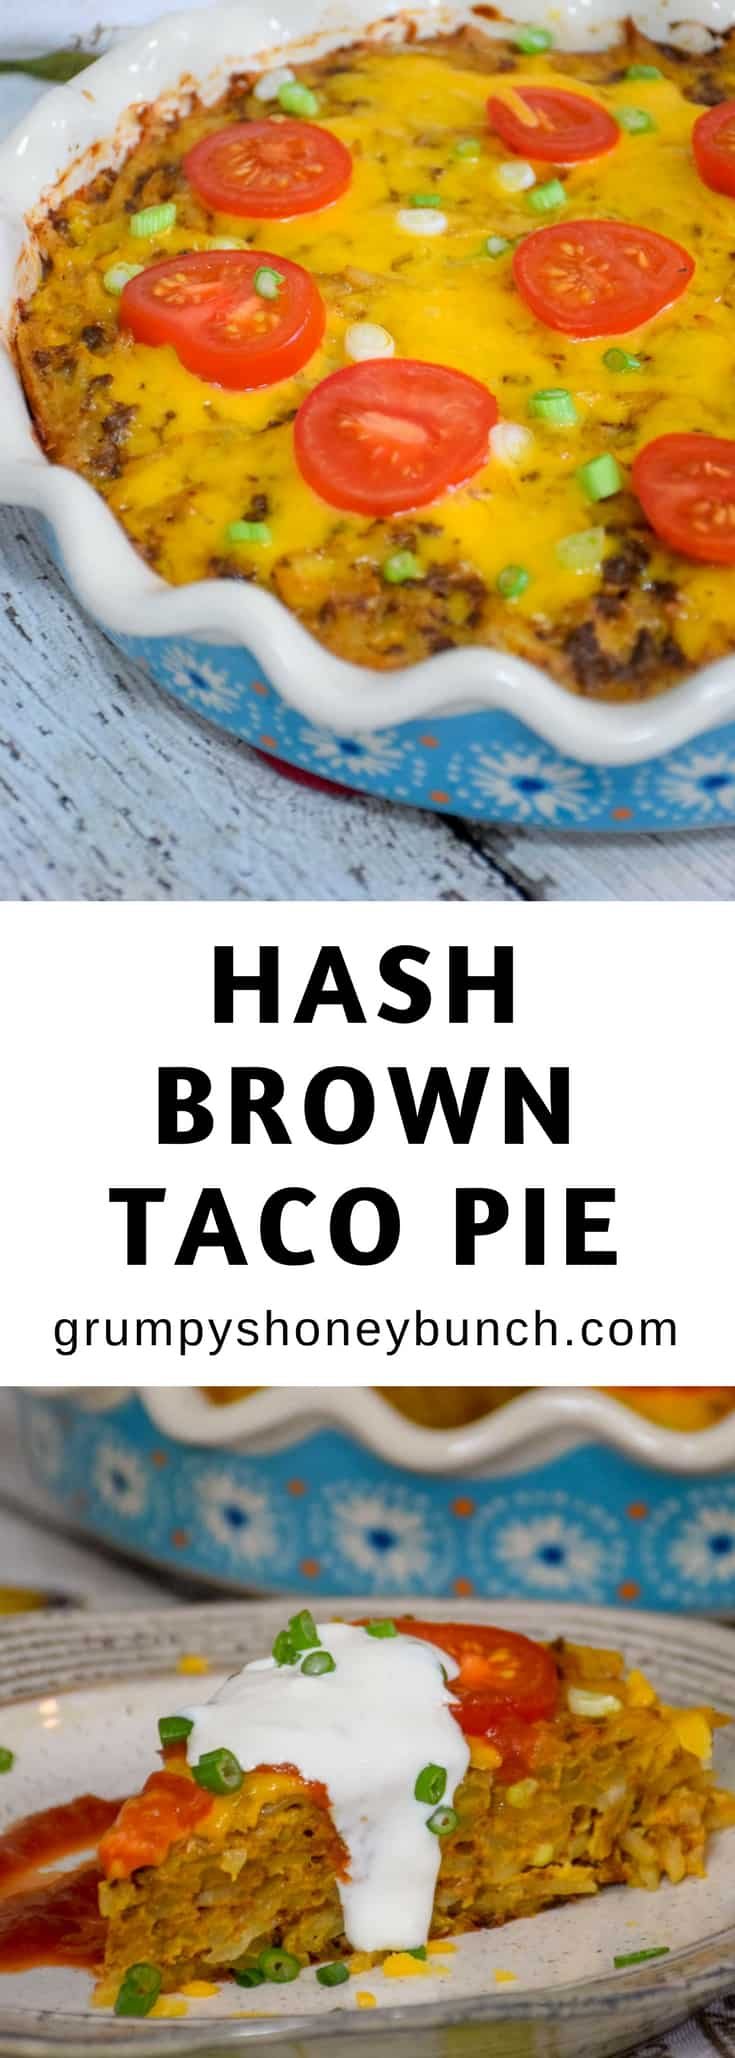 Hash Brown Taco Pie